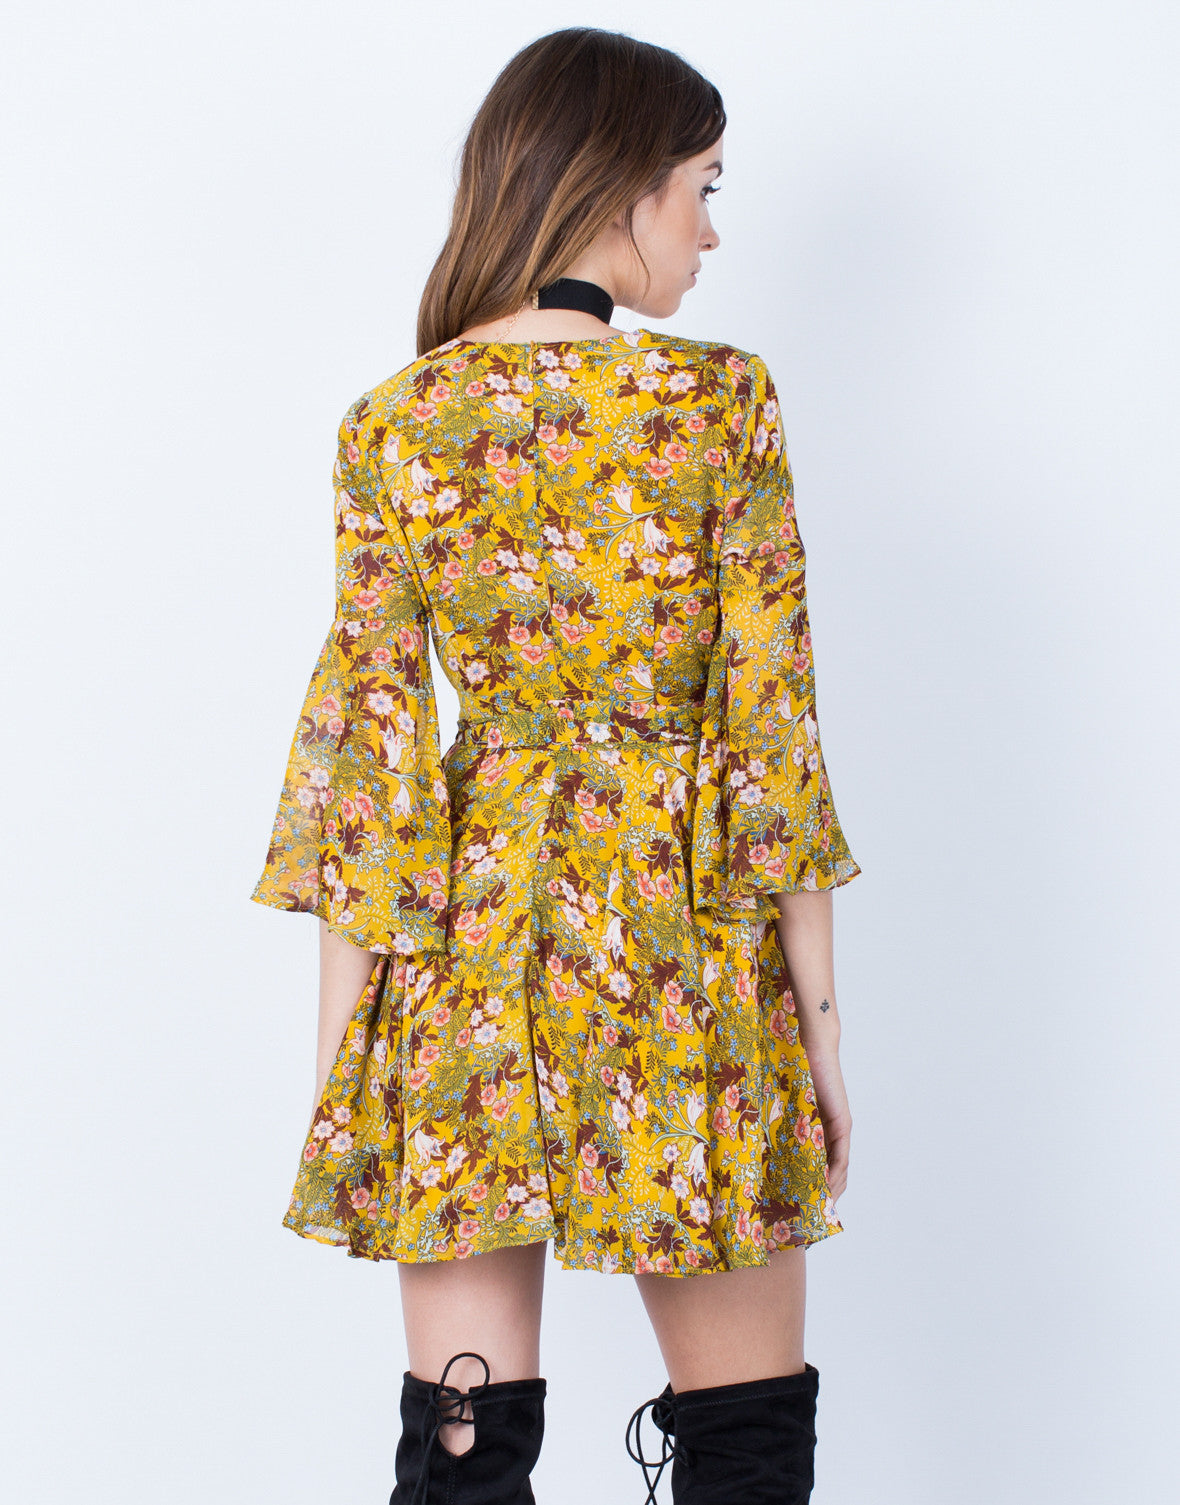 Back View of Dolled Up Floral Dress